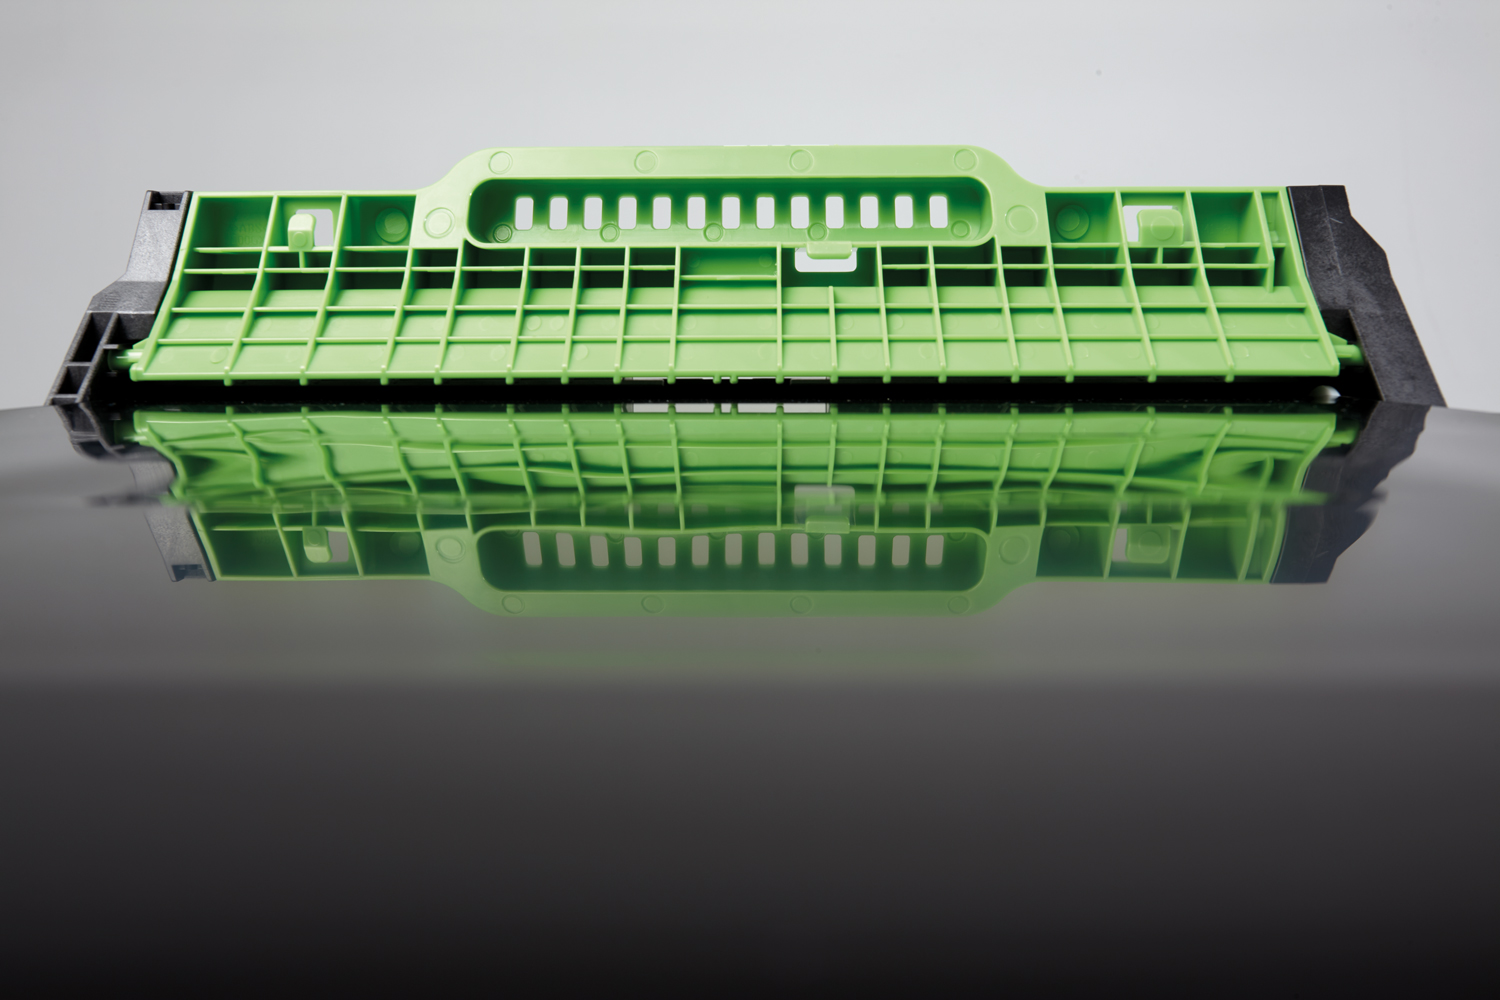 The electrostatic component in a Brother printer that resembles a swimming pool